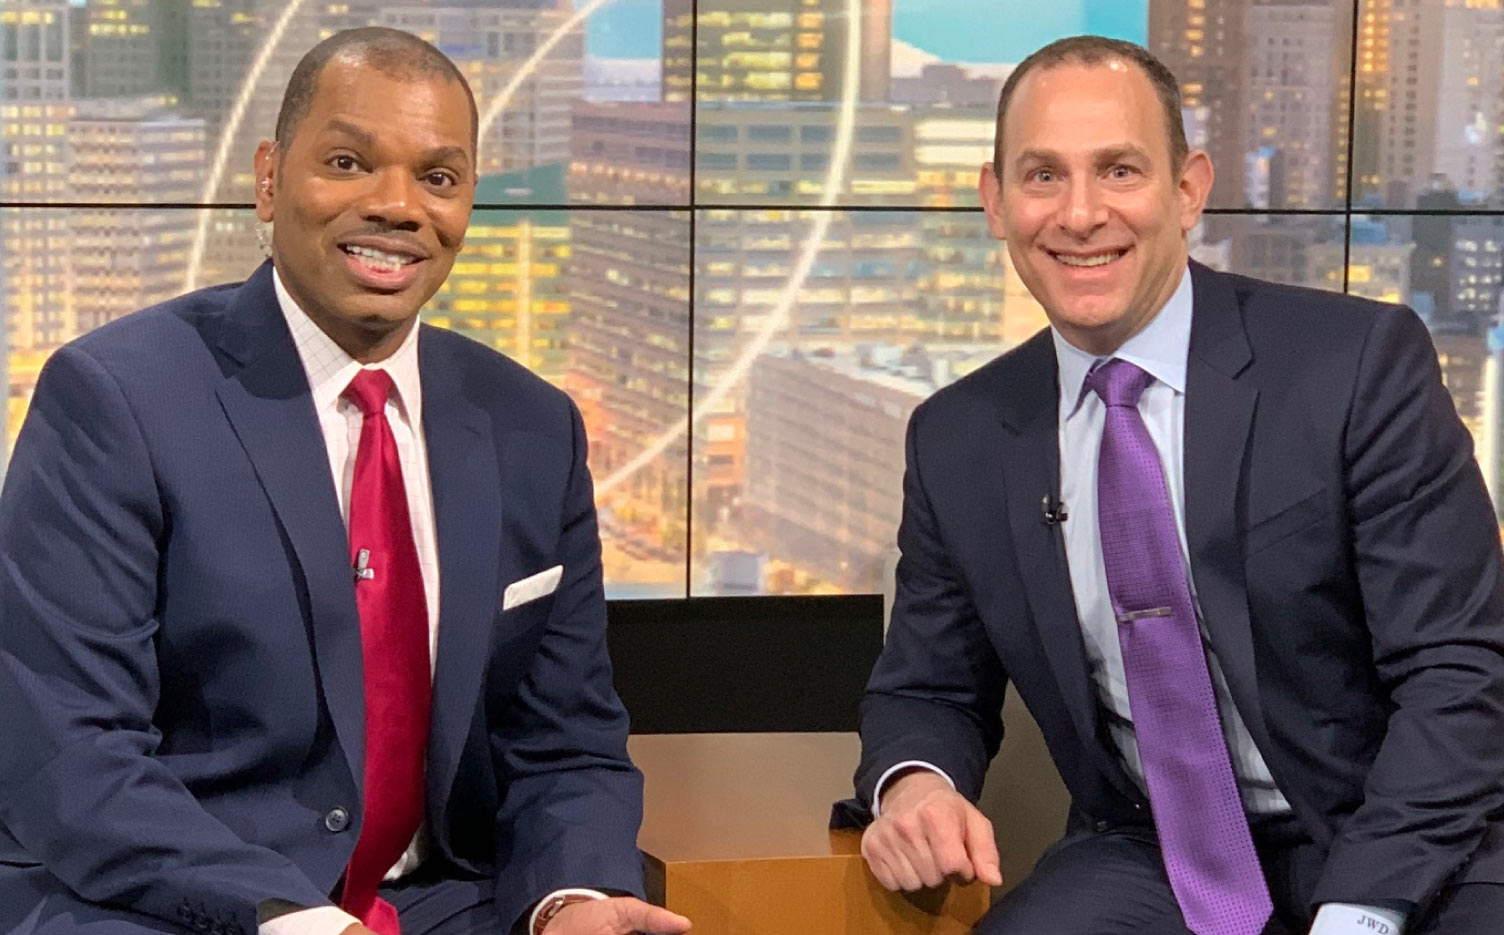 Jon Talks with Channel 7 WXYZ Morning News Anchor Keenan Smith: How to Score a Job Right Out of College